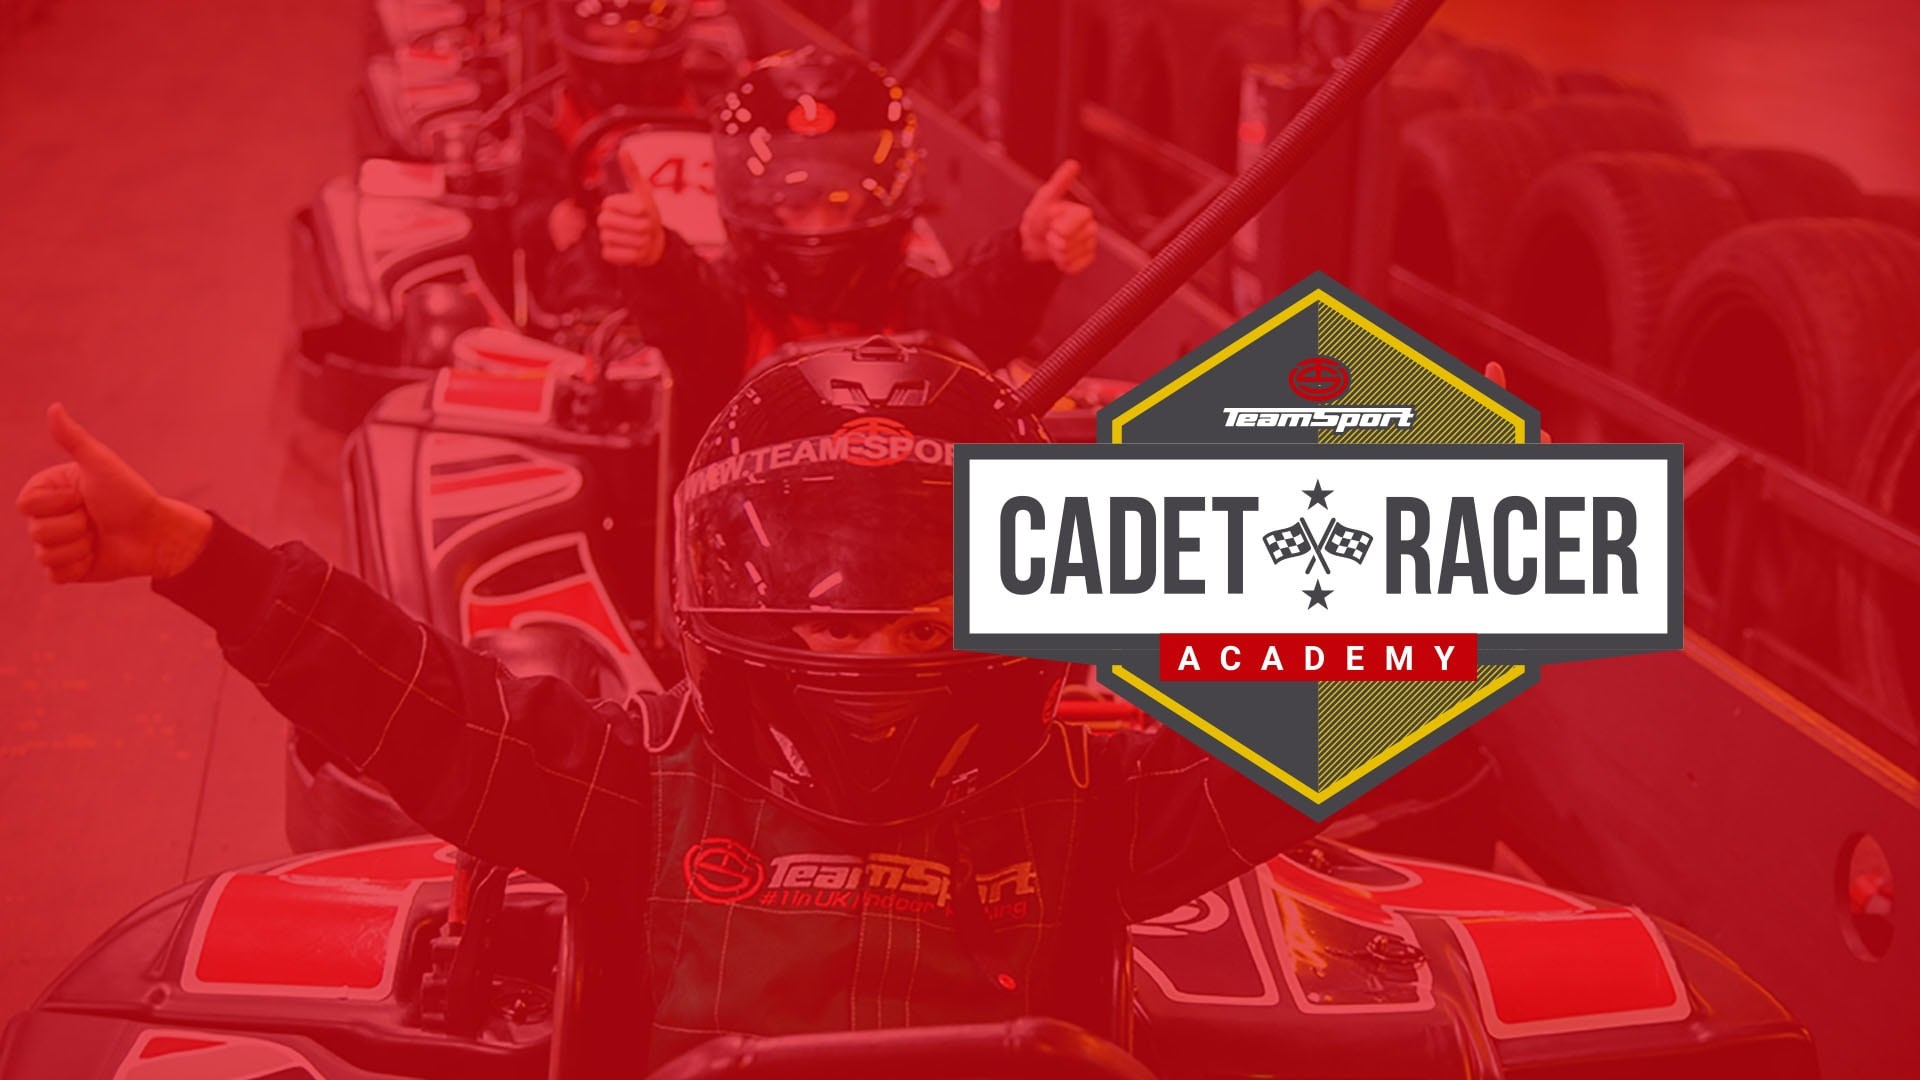 TeamSport_Trackside_News_Cadet_Academy_Relaunch_Main_Header_1920x1080-min.jpg